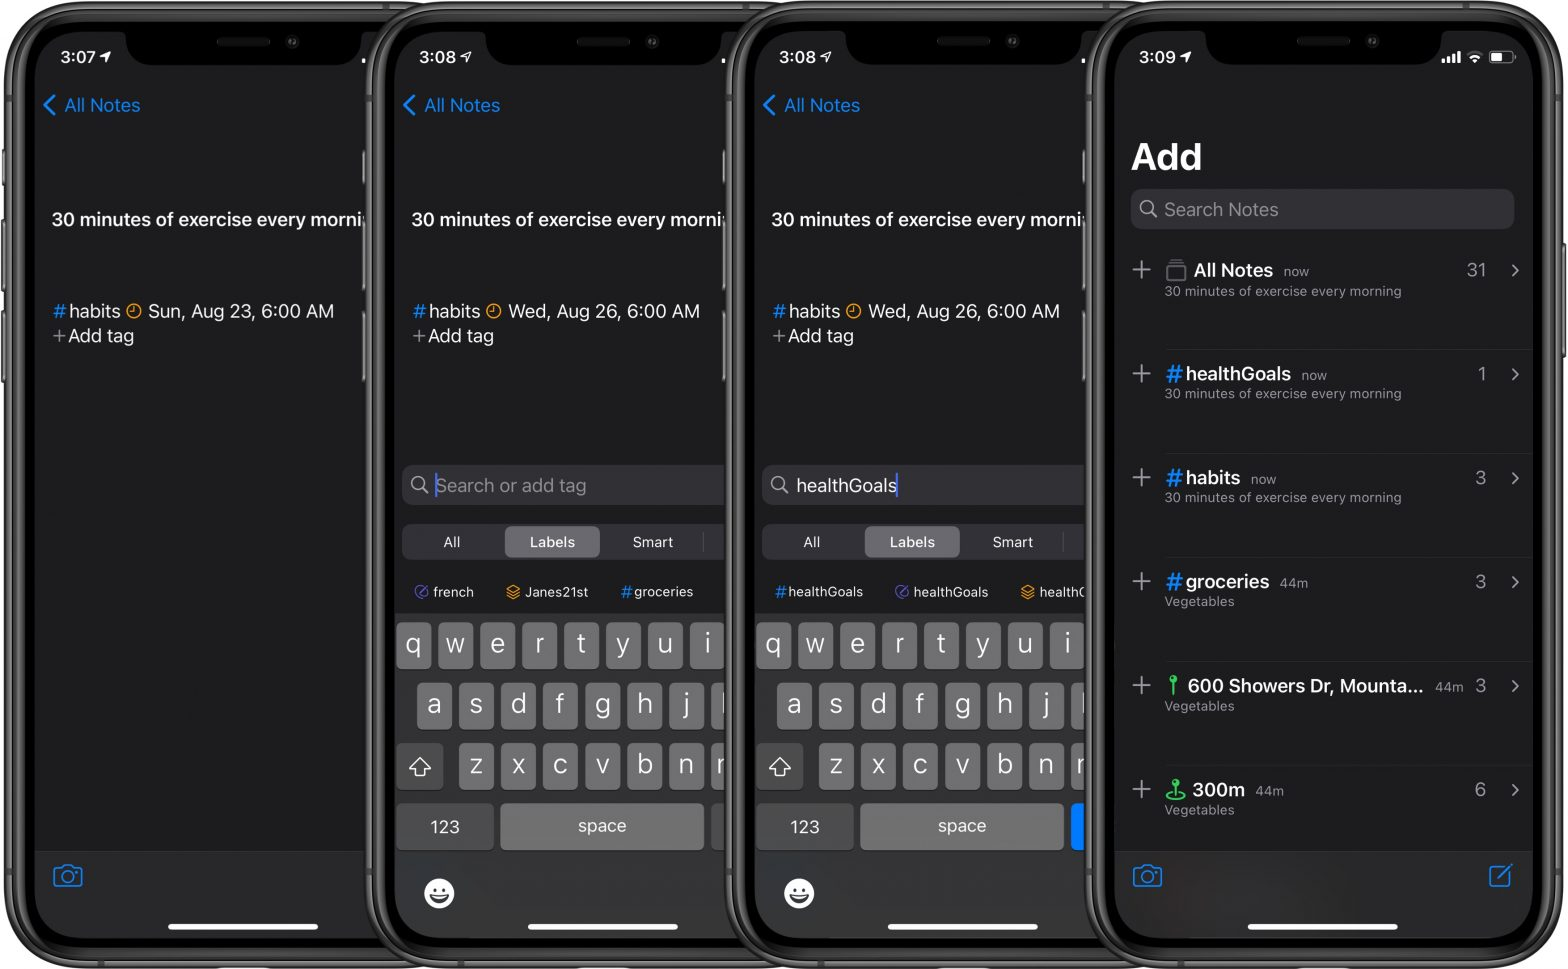 North Notes - How to organize your notes and create new tags